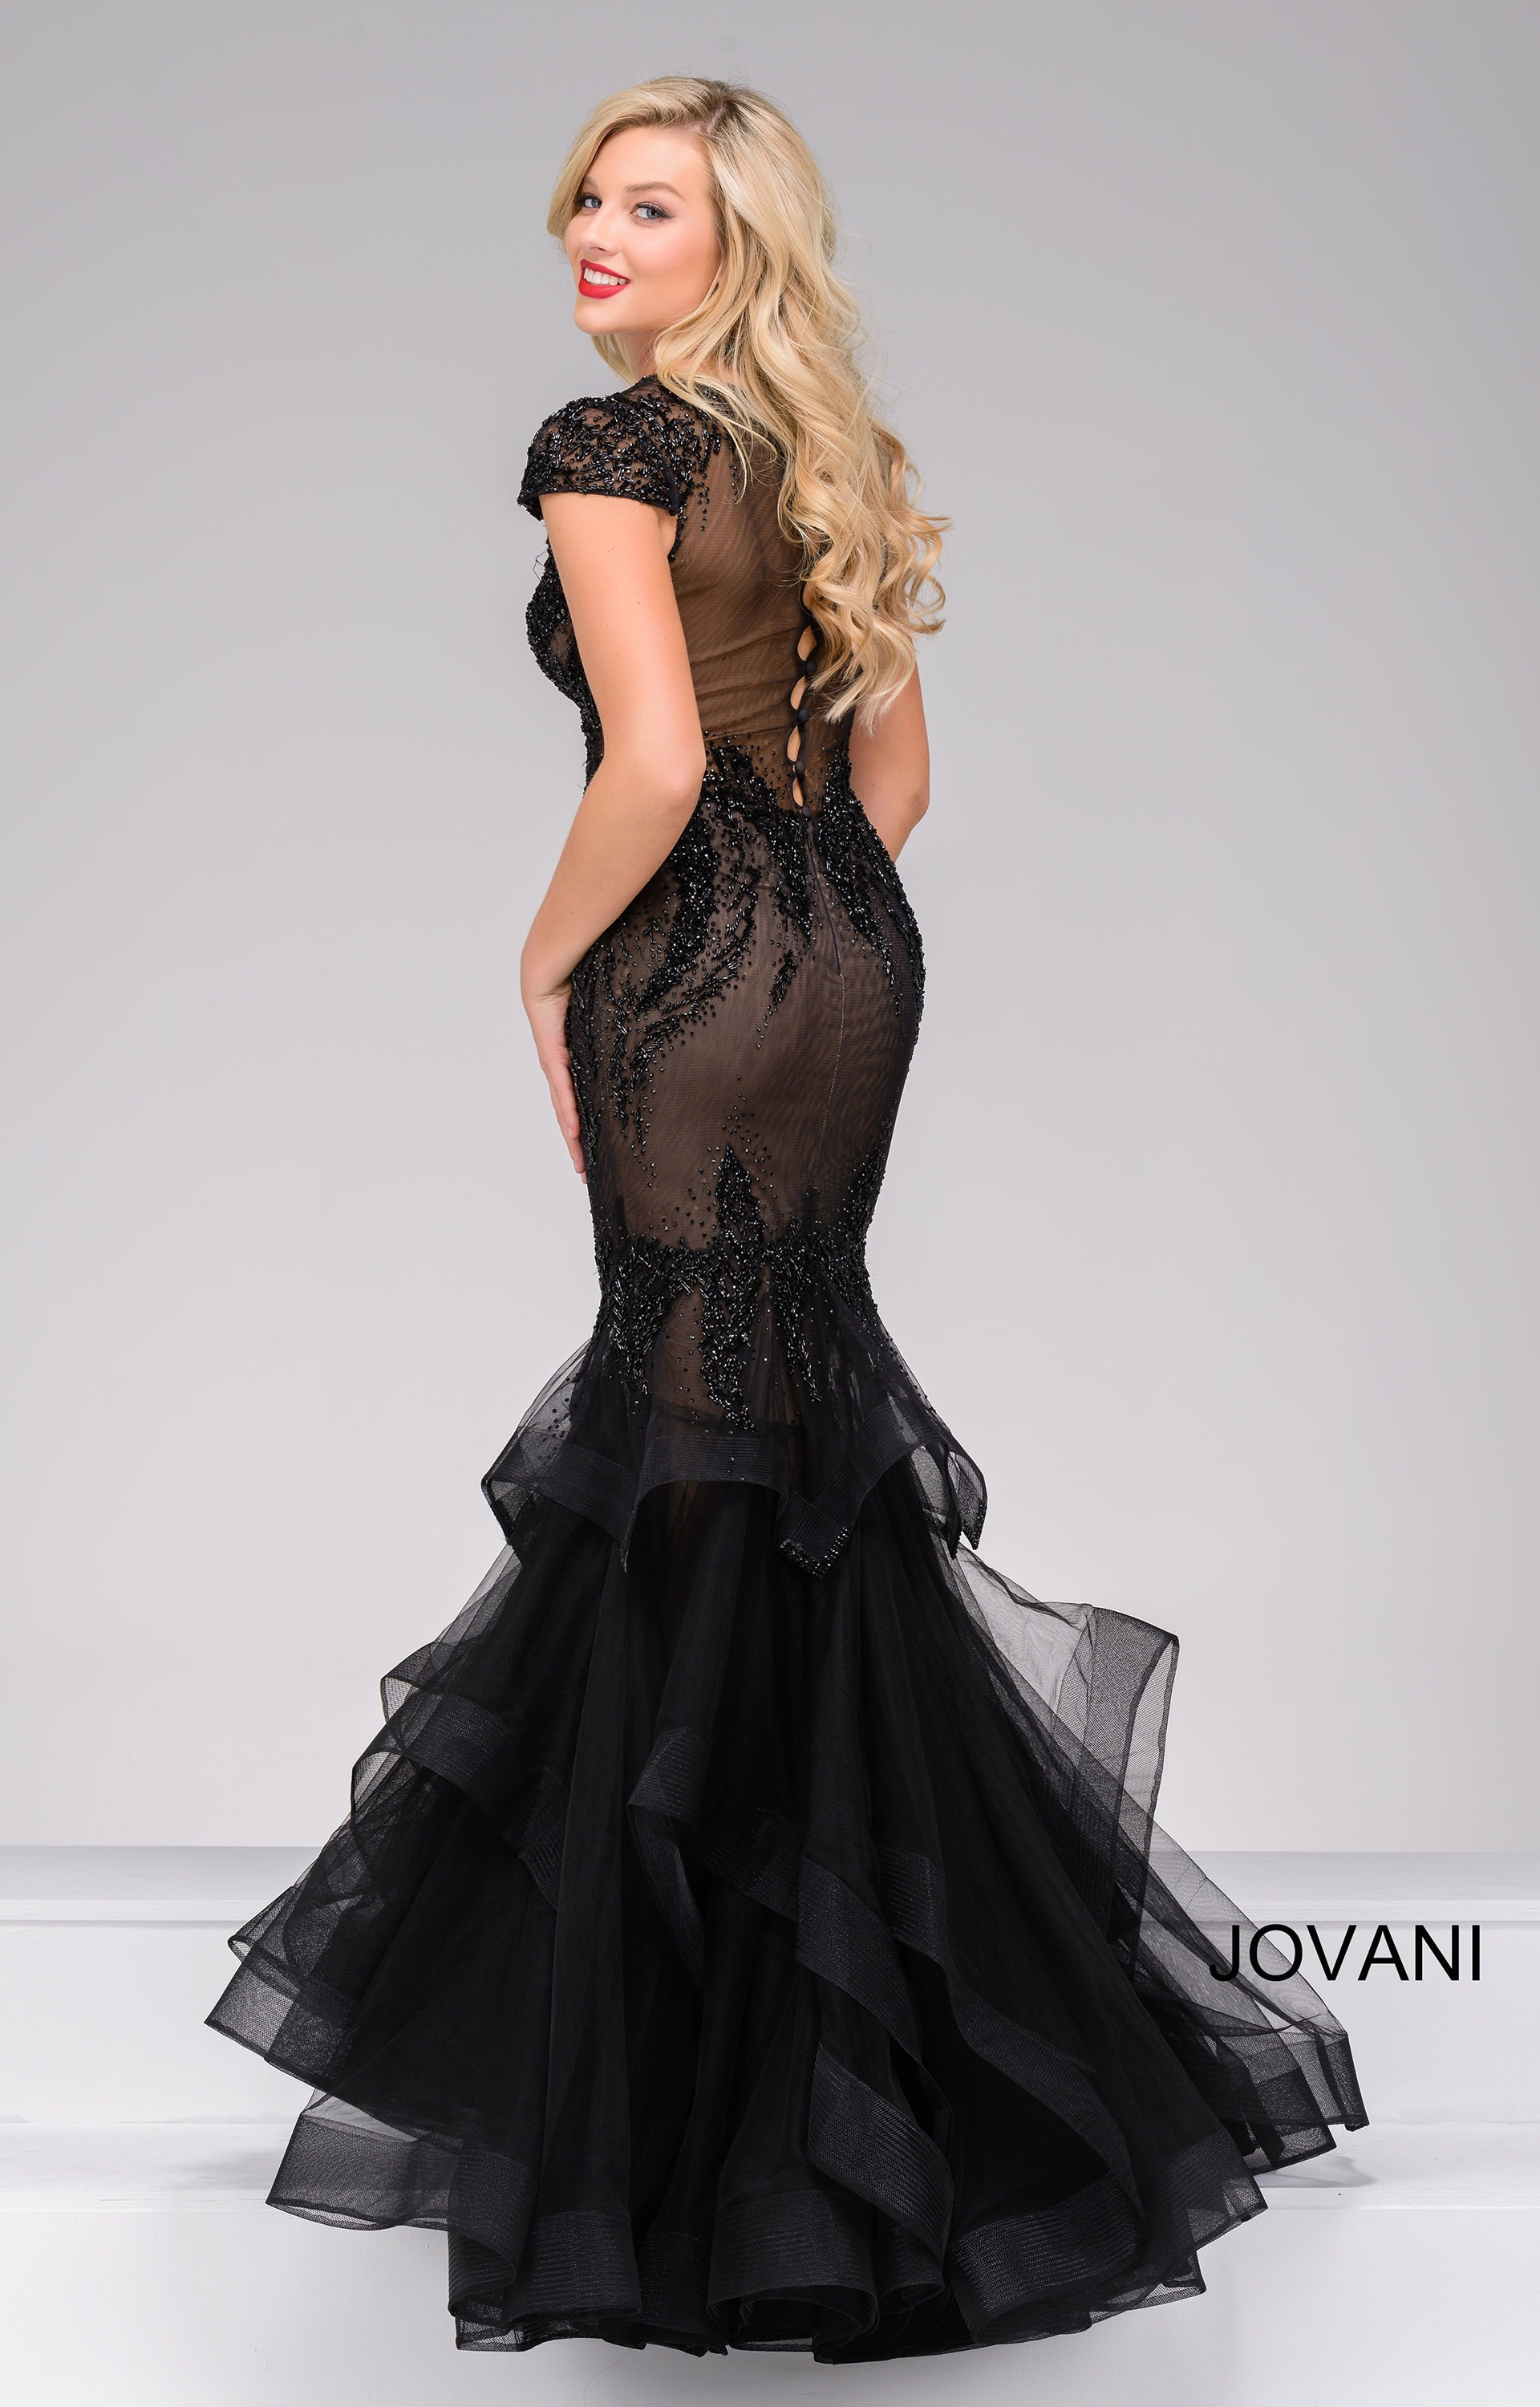 Jovani 26947 Sexy And Sheer Mermaid Gown Prom Dress